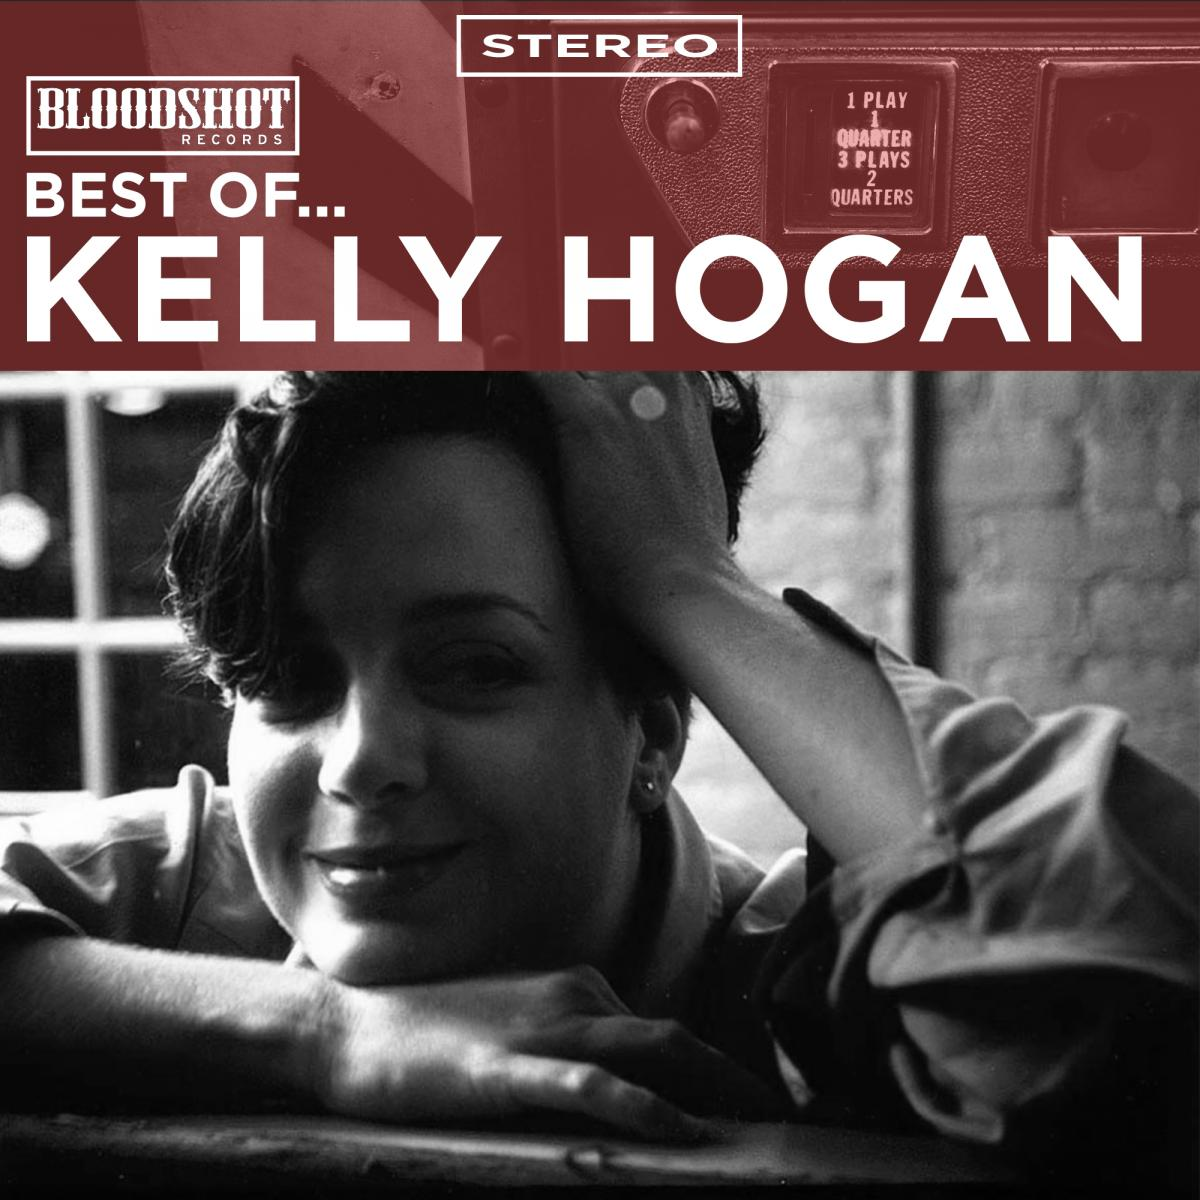 Best of Kelly Hogan Bloodshot Records